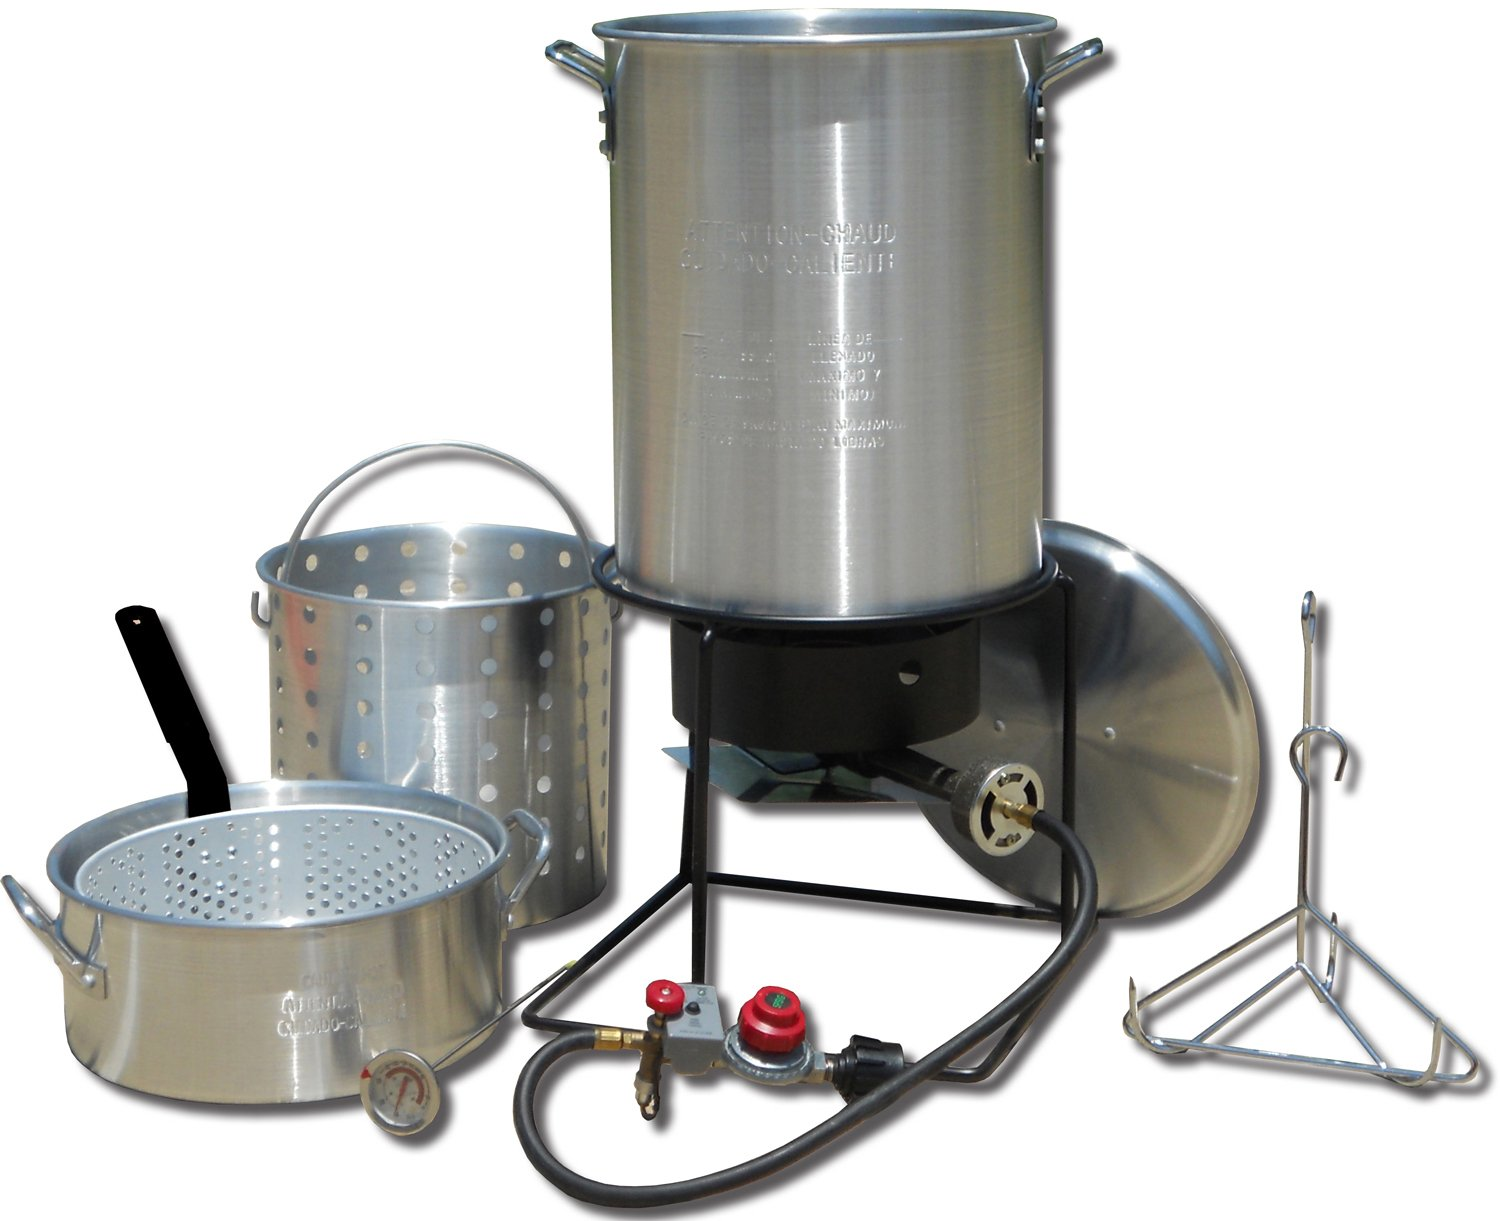 King Kooker 1265BF3 Portable Propane Outdoor Deep Frying/Boiling Package with 2 Aluminum Pots by King Kooker